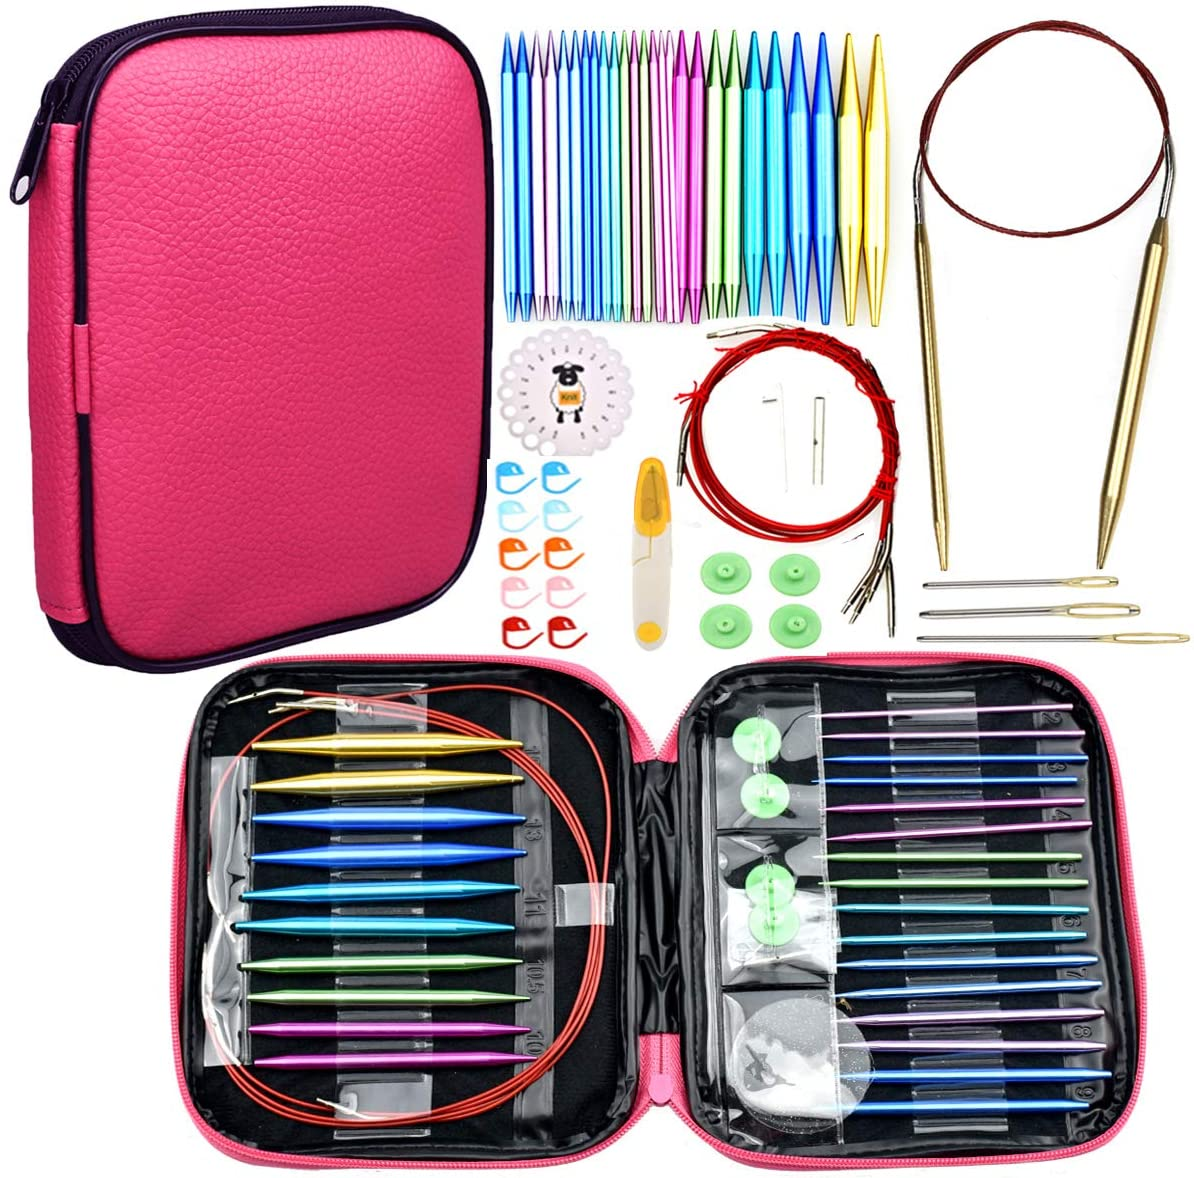 Looen 37pcs Aluminum Circular Knitting Needles Set with Ergonomic Handles,13 Size Interchangeable Crochet Needles with Storage Case for Small Project (Style 1)